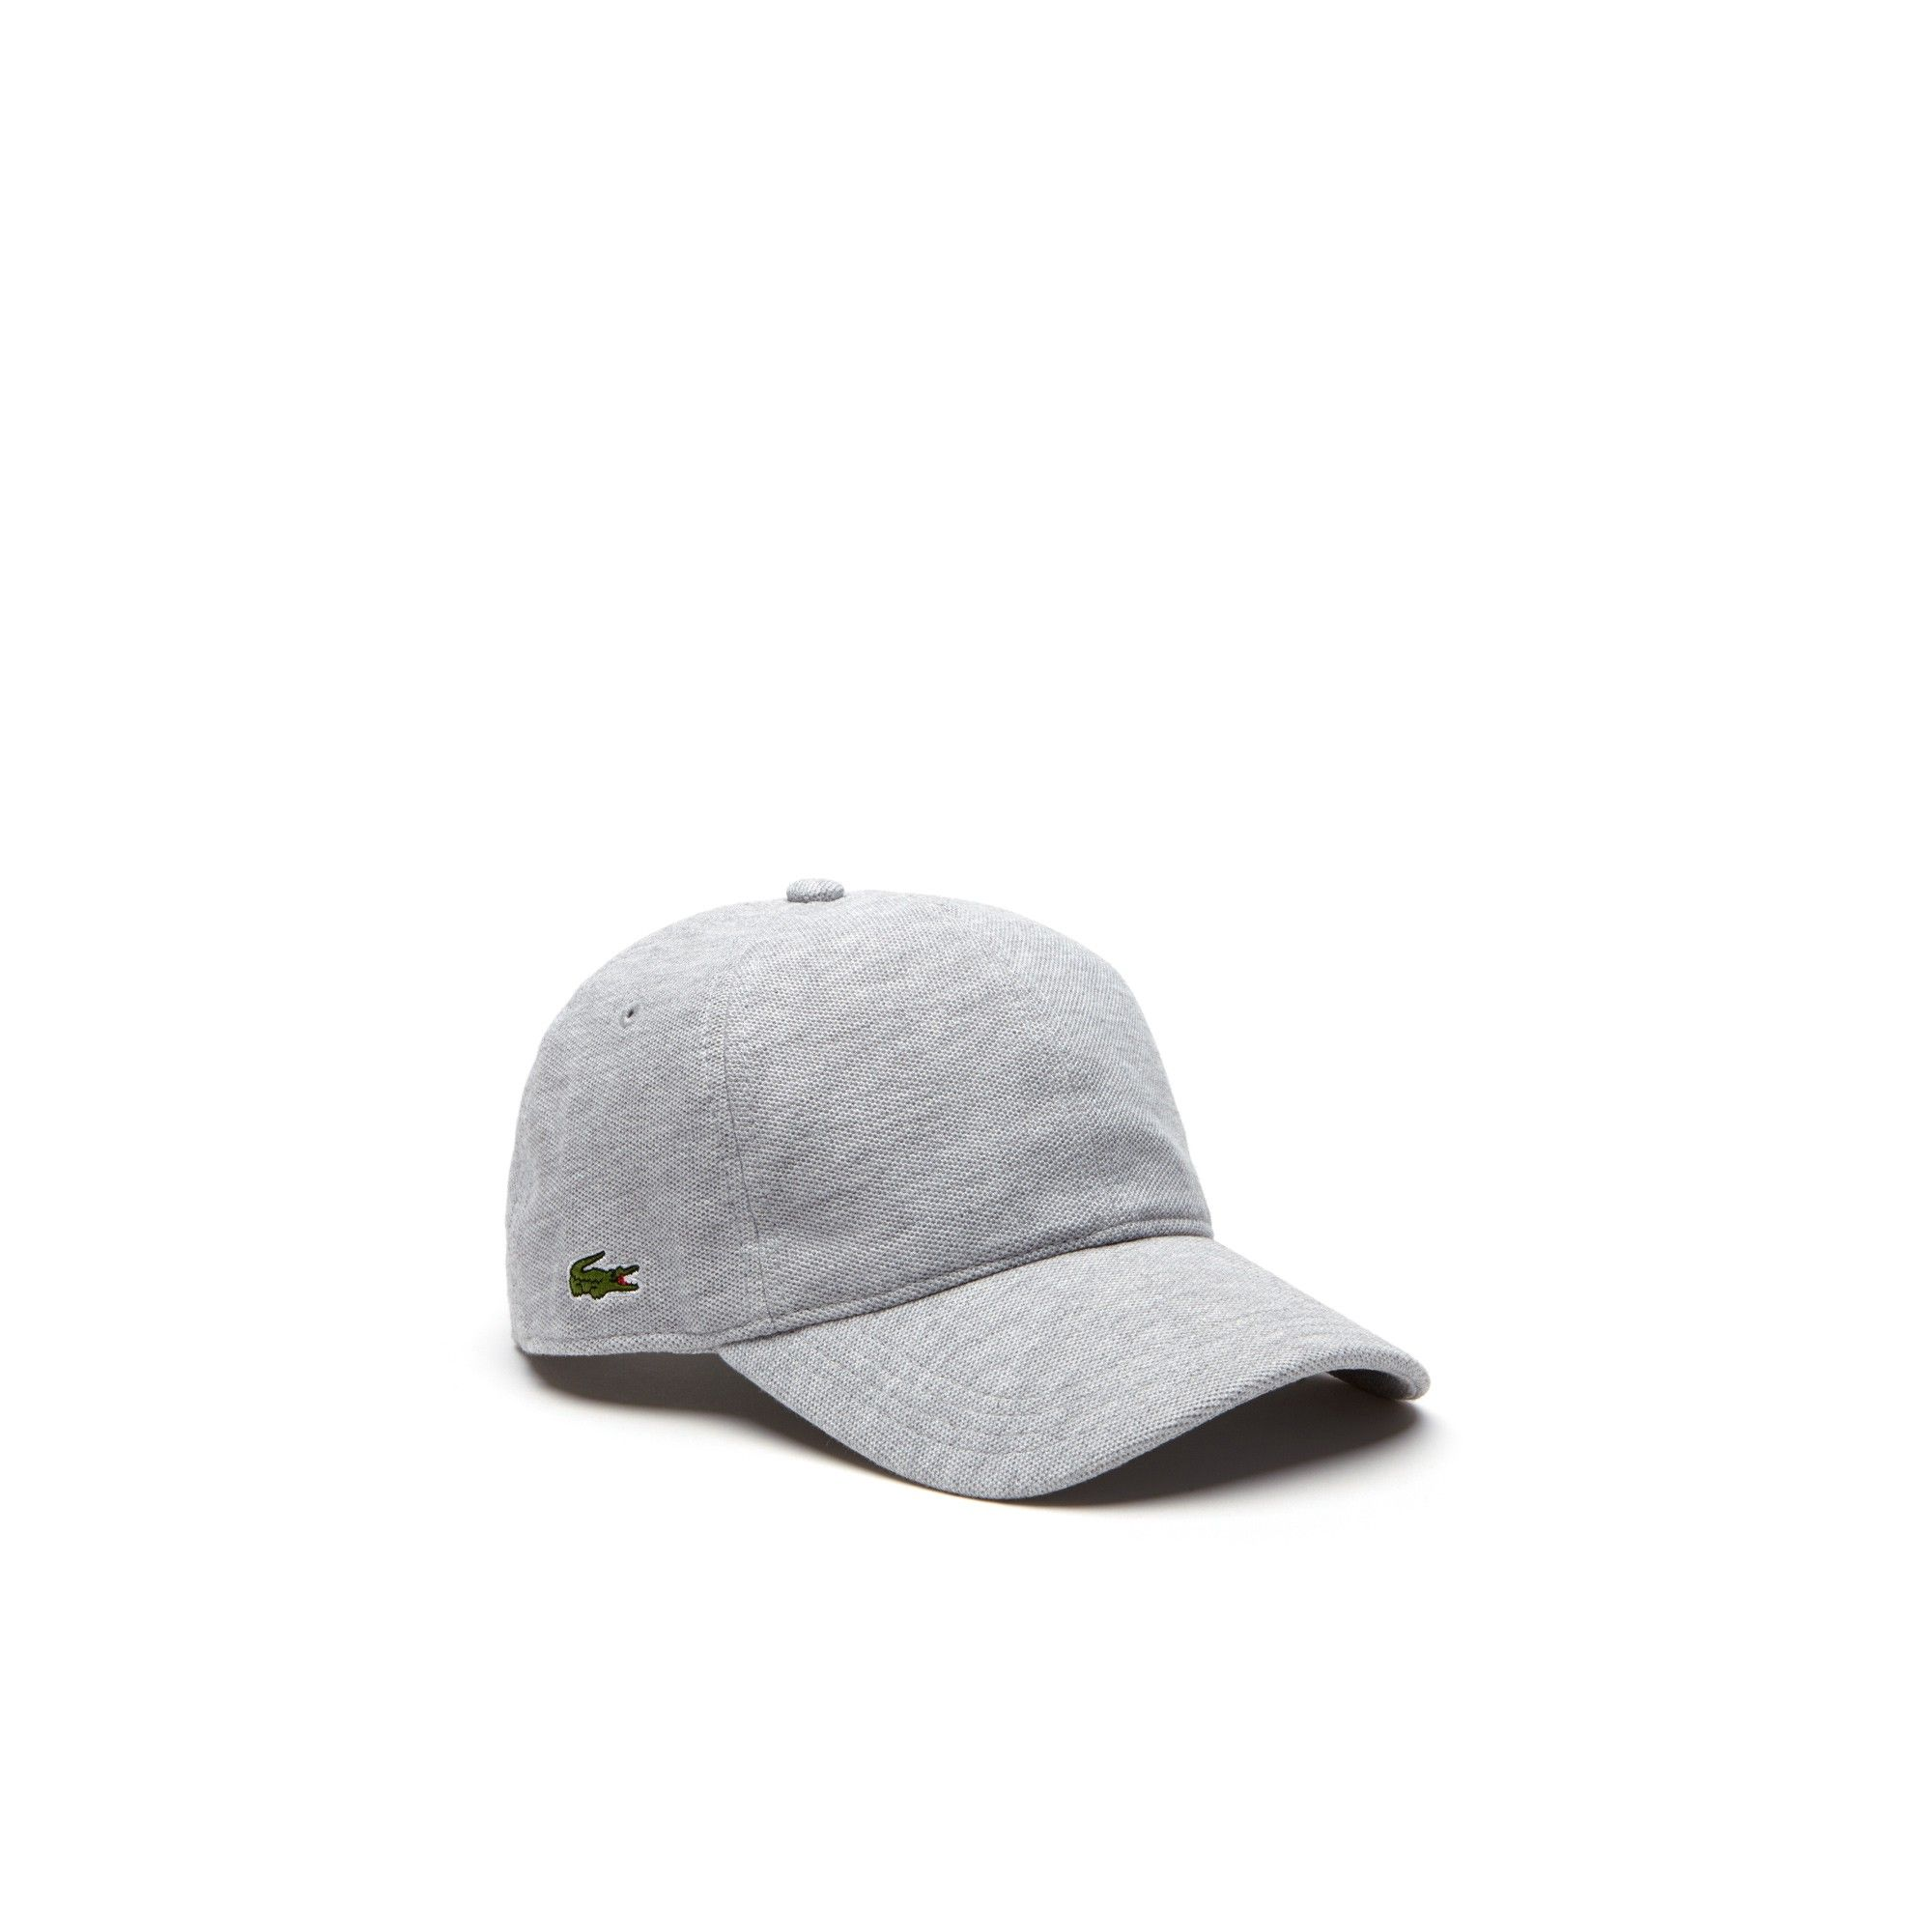 Lacoste Men s Cotton Pique Cap - Silver Grey Chine L Gray 6f6aeb57e338